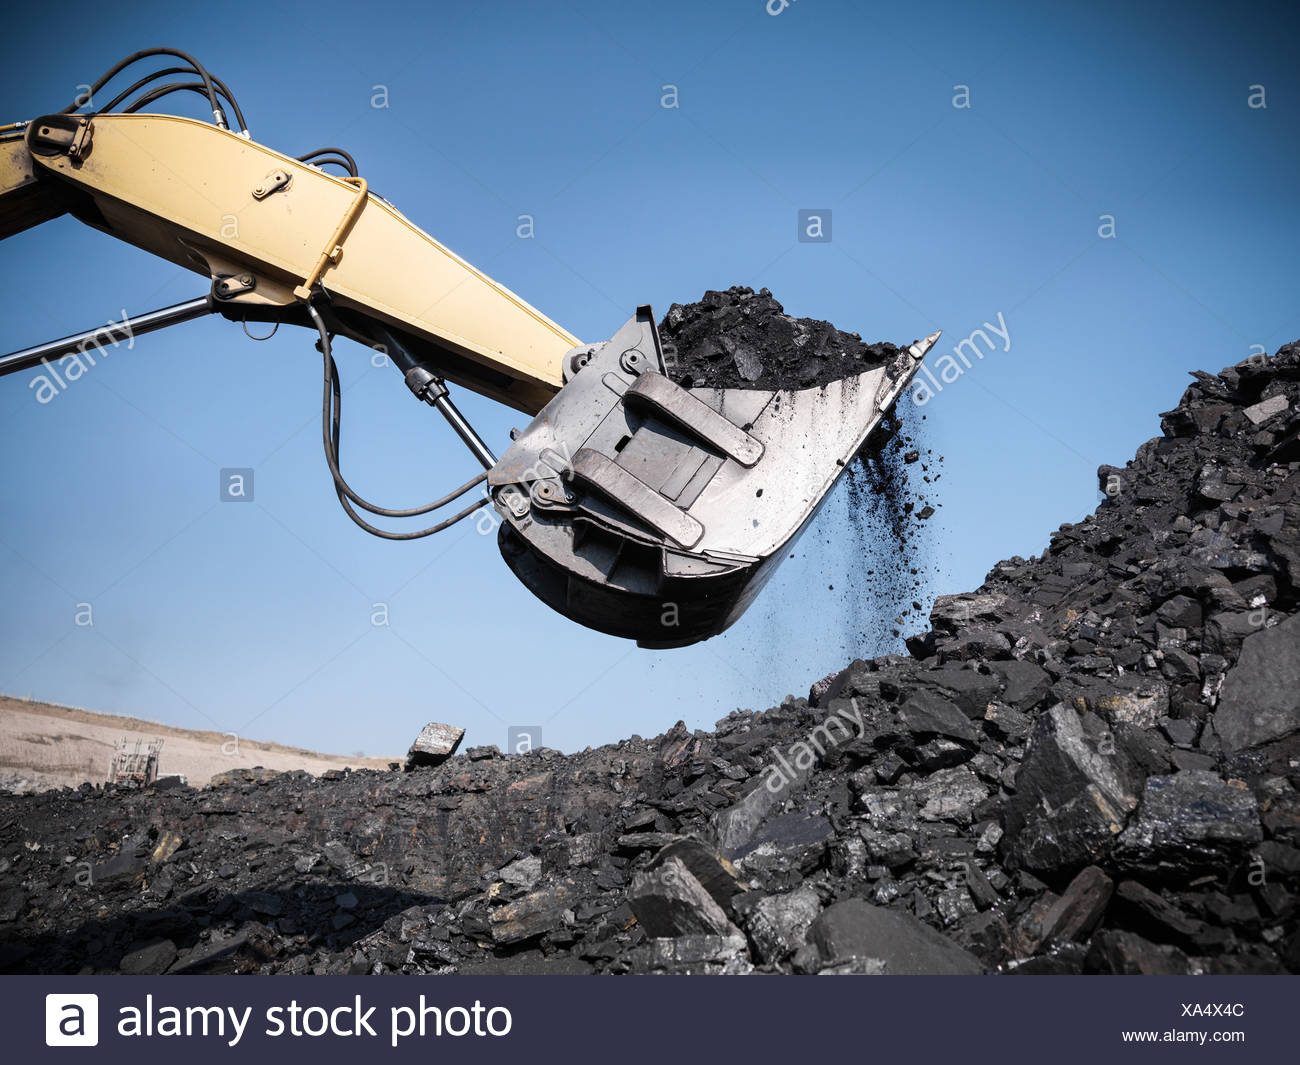 Digger scooping coal at mine - Stock Image